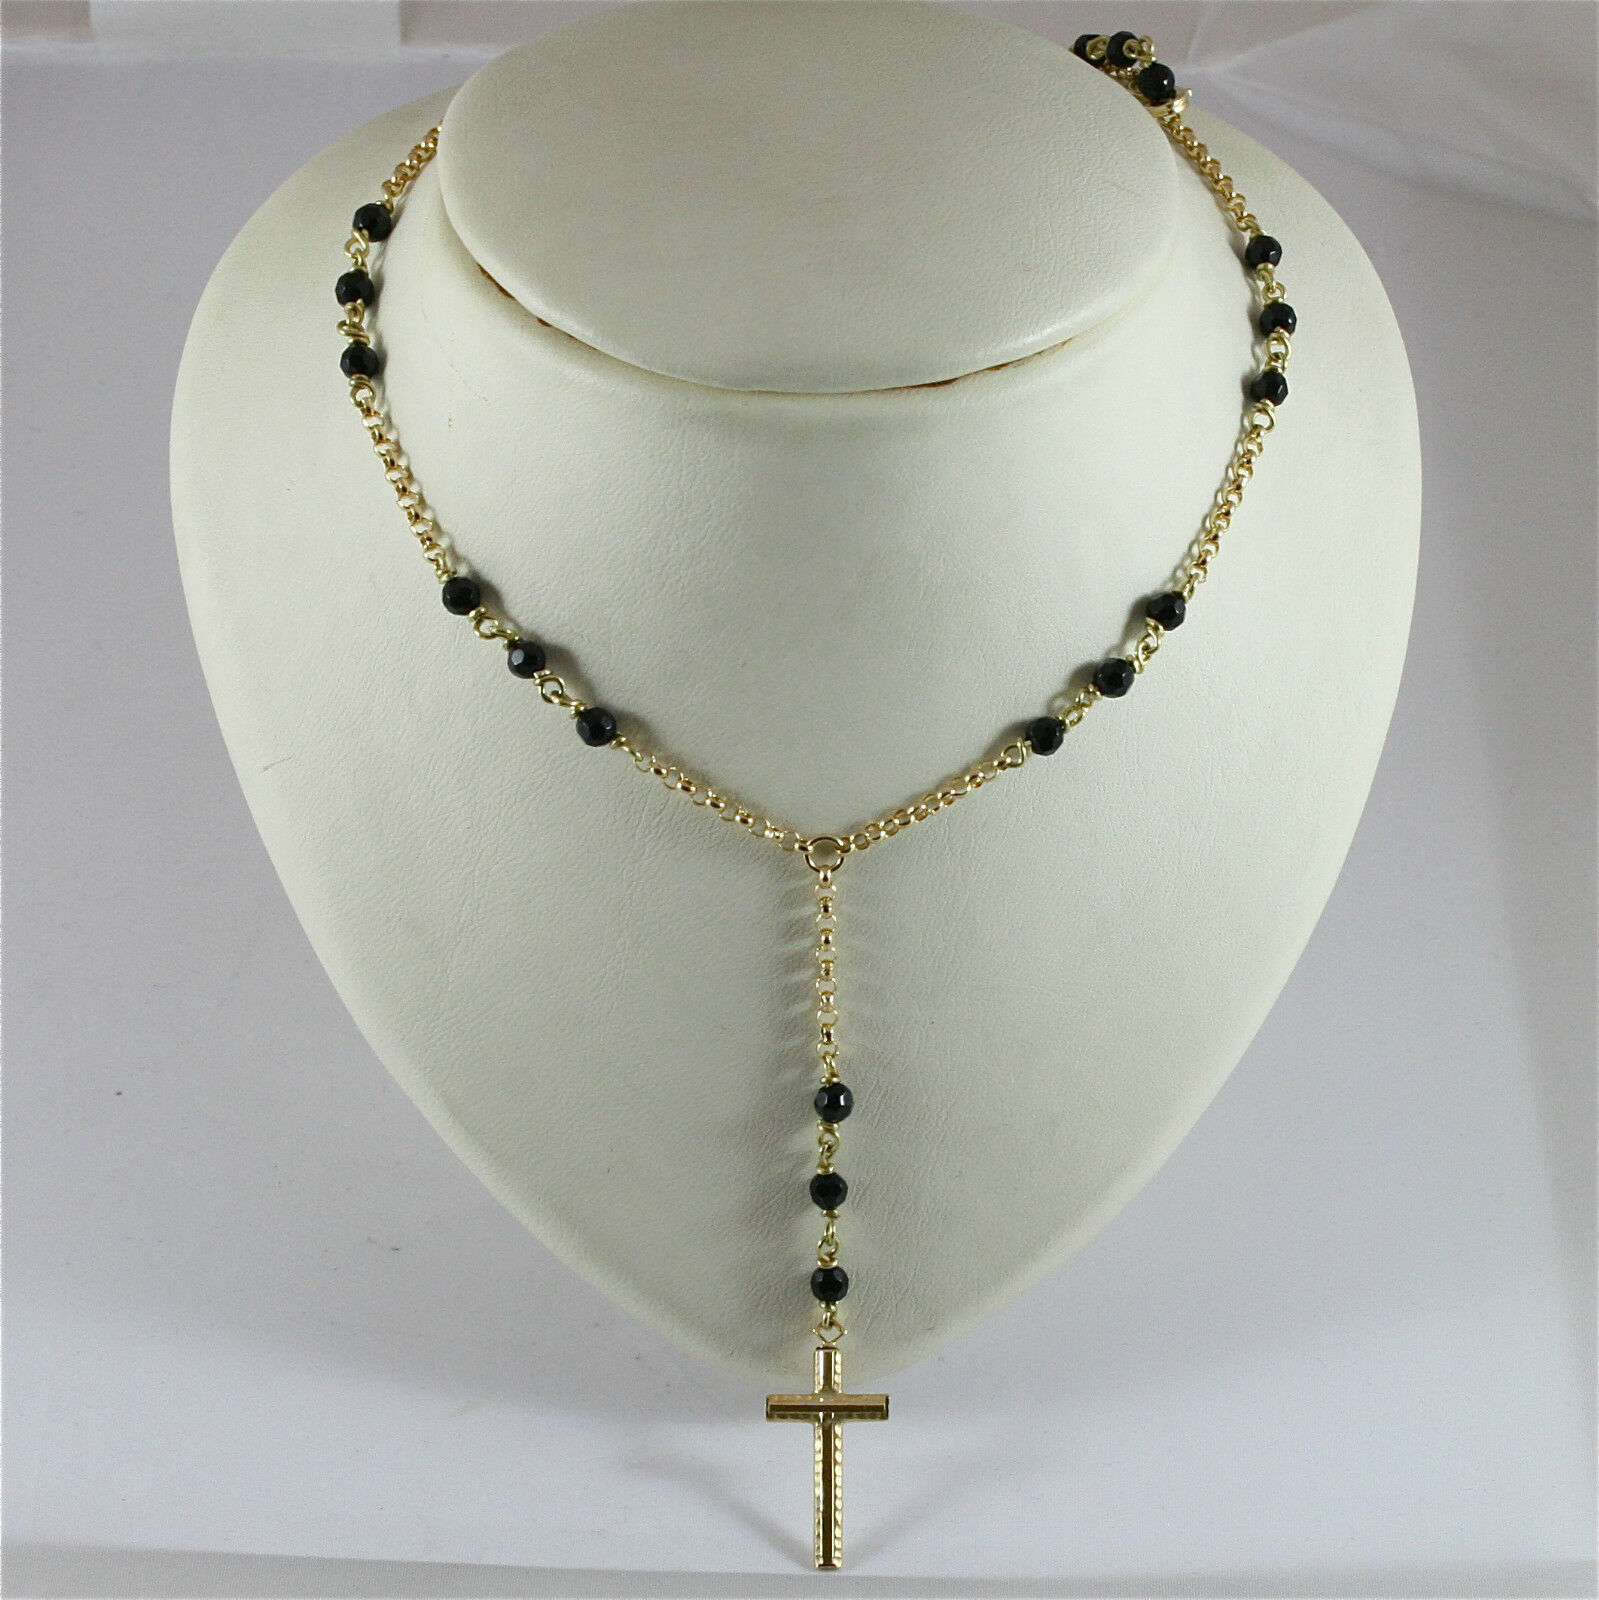 18K 750 YELLOW GOLD CROSS PENDANT, NECKLACE WITH ONYX, MADE IN ITALY